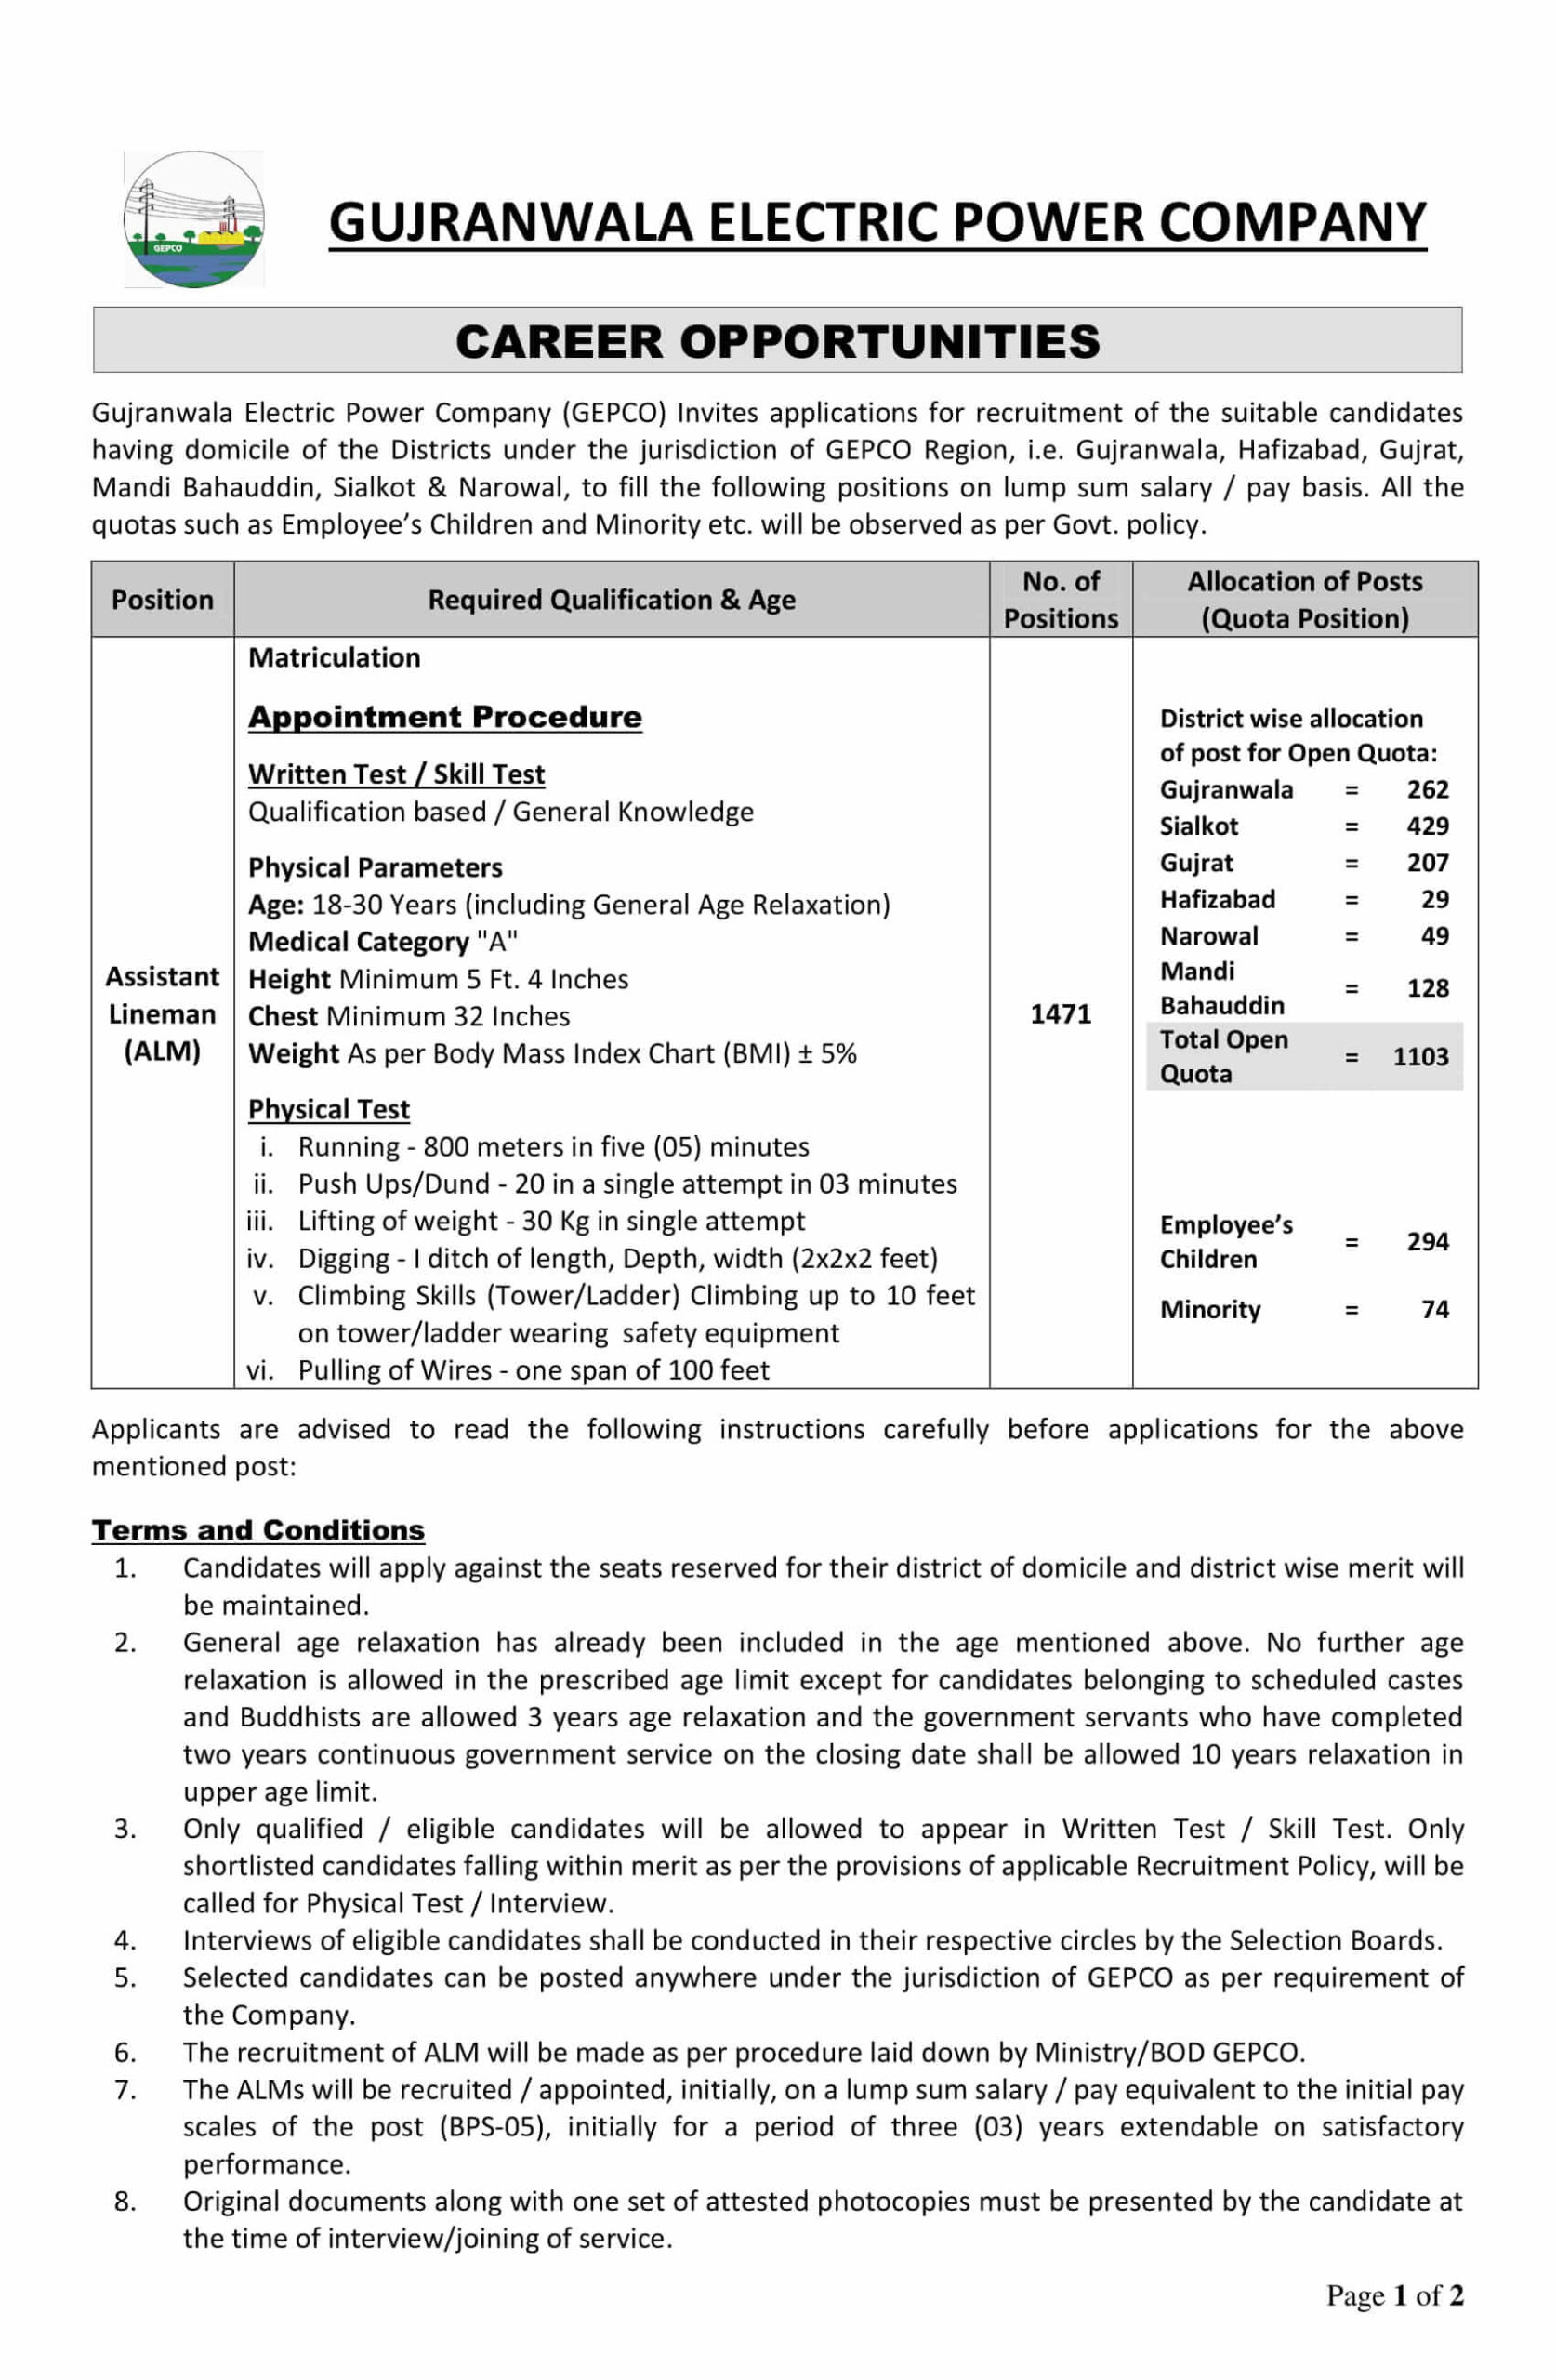 Gujranwala Electric Power Company GEPCO ALM Jobs NTS Roll No Slip